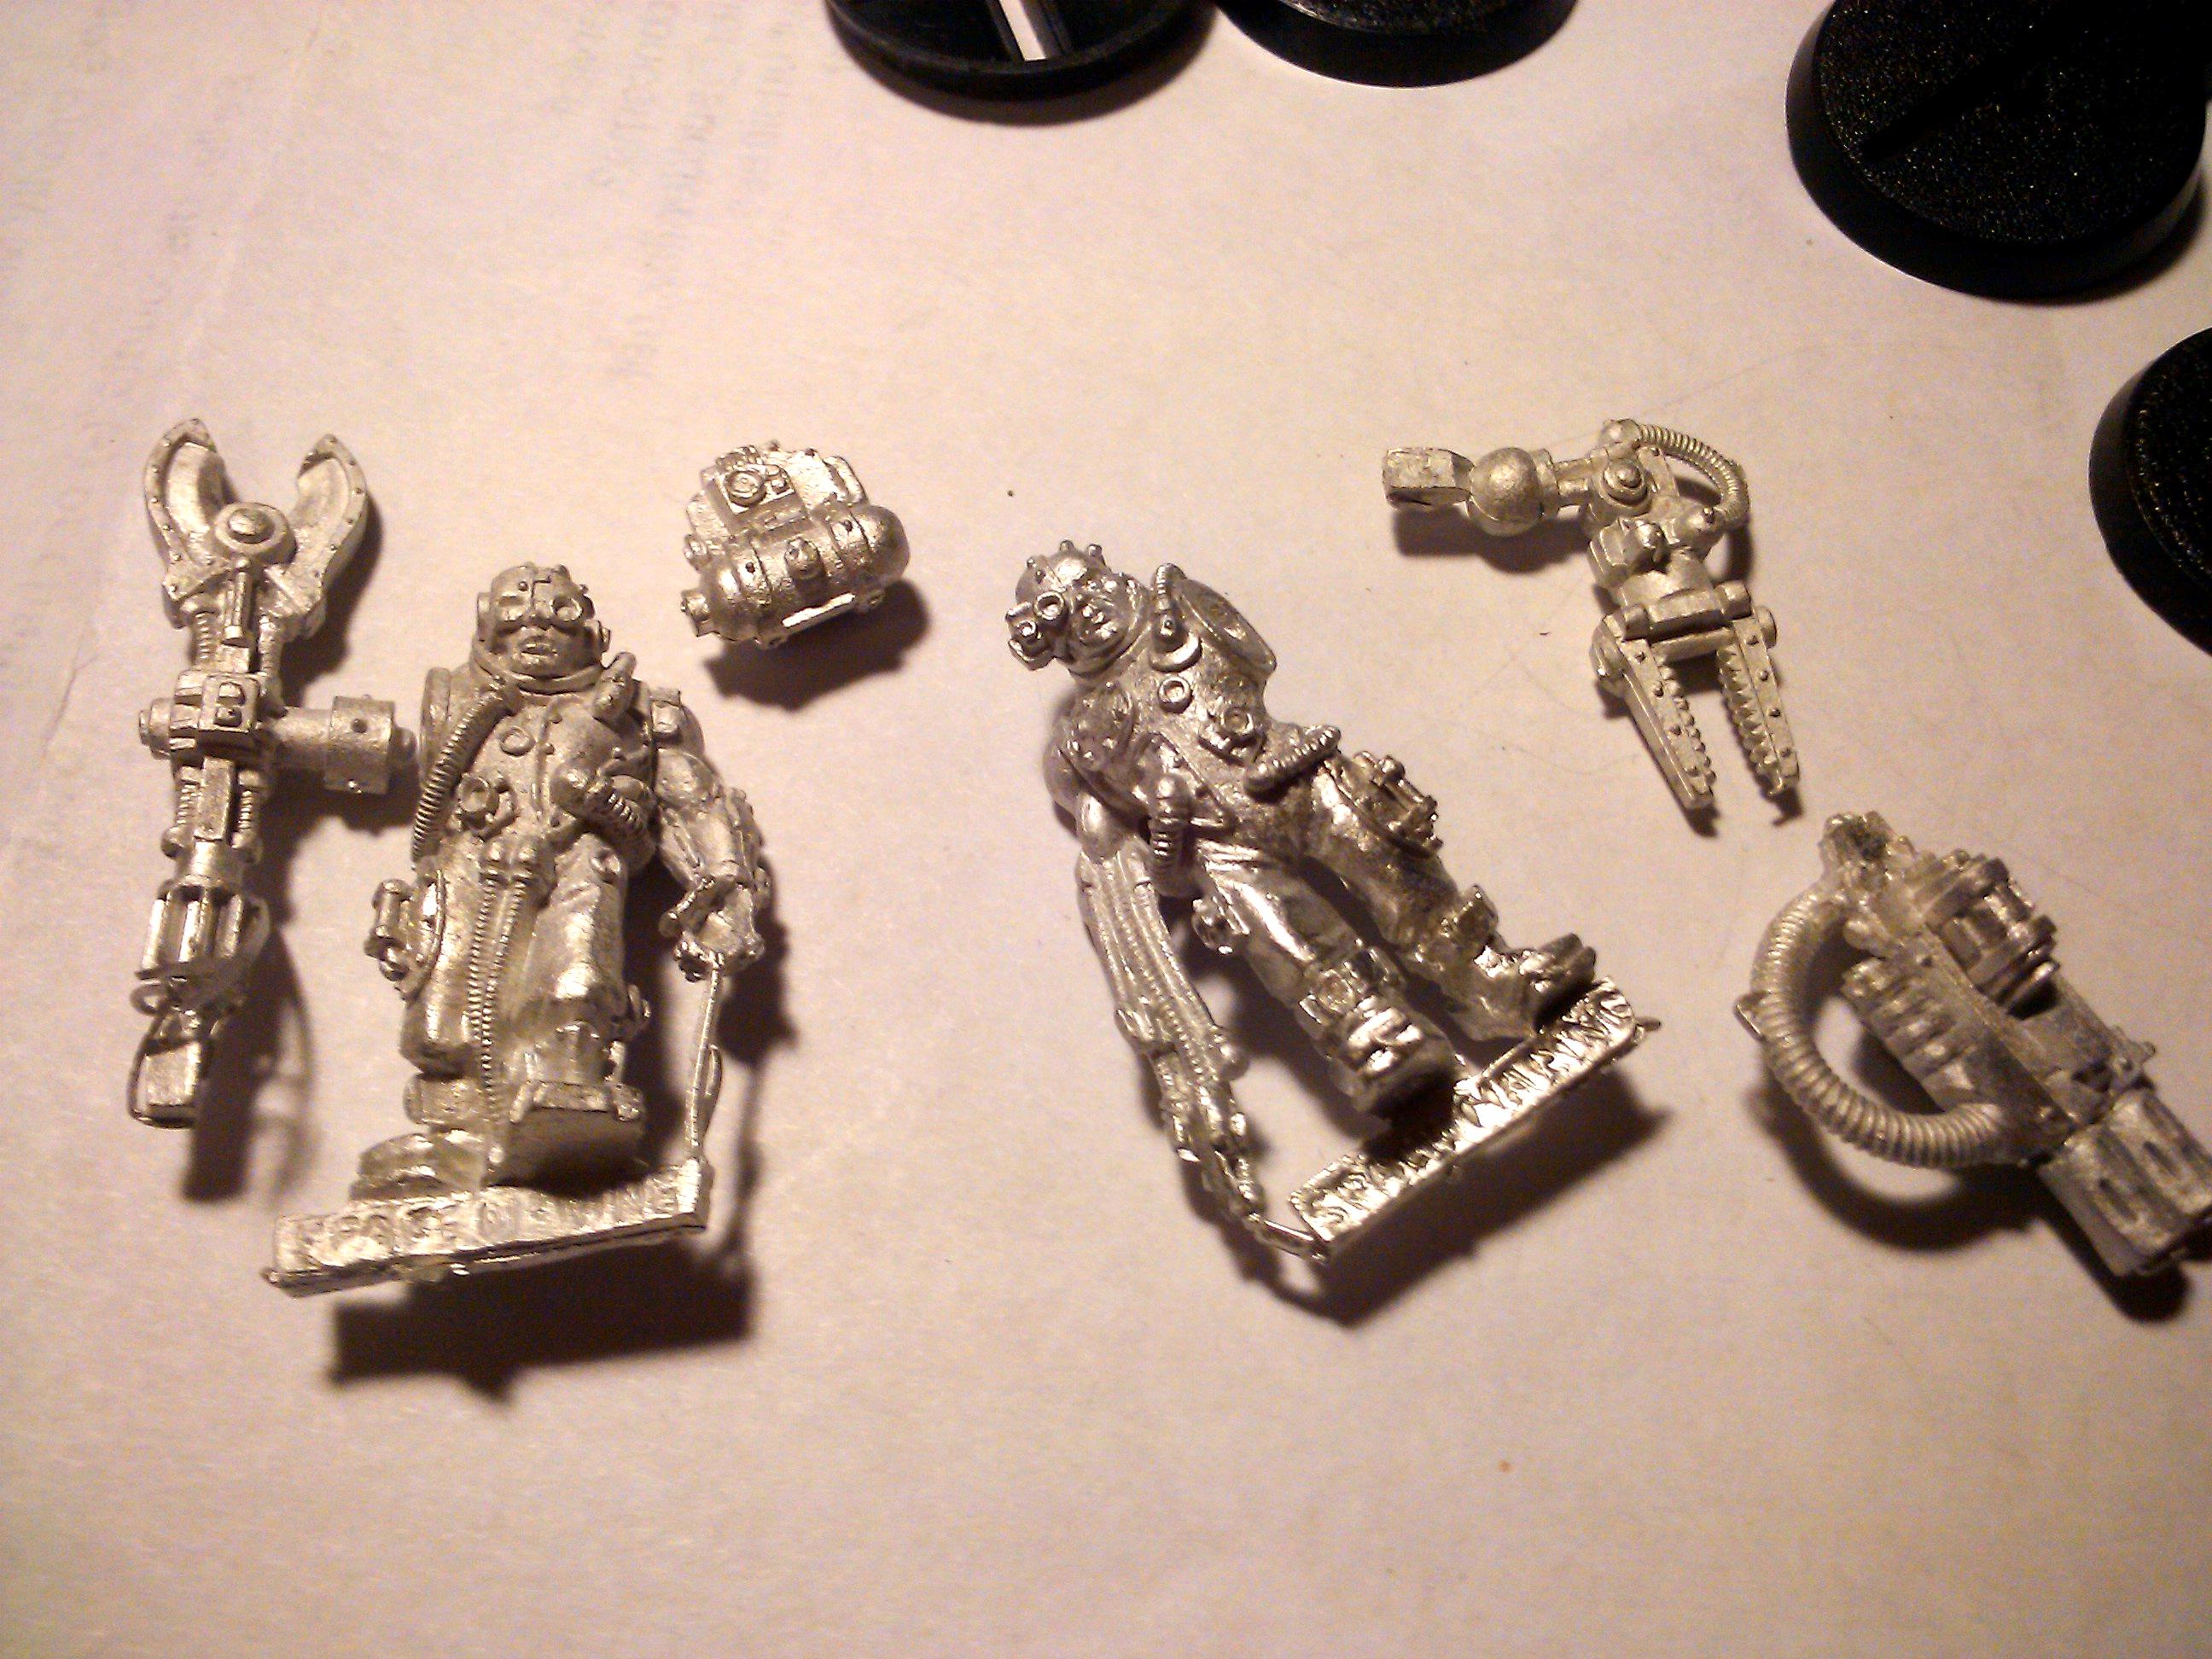 Conversion, Imperial Guard, Mordian Iron Guard, Paint Scheme, Servitors, Warhammer 40,000